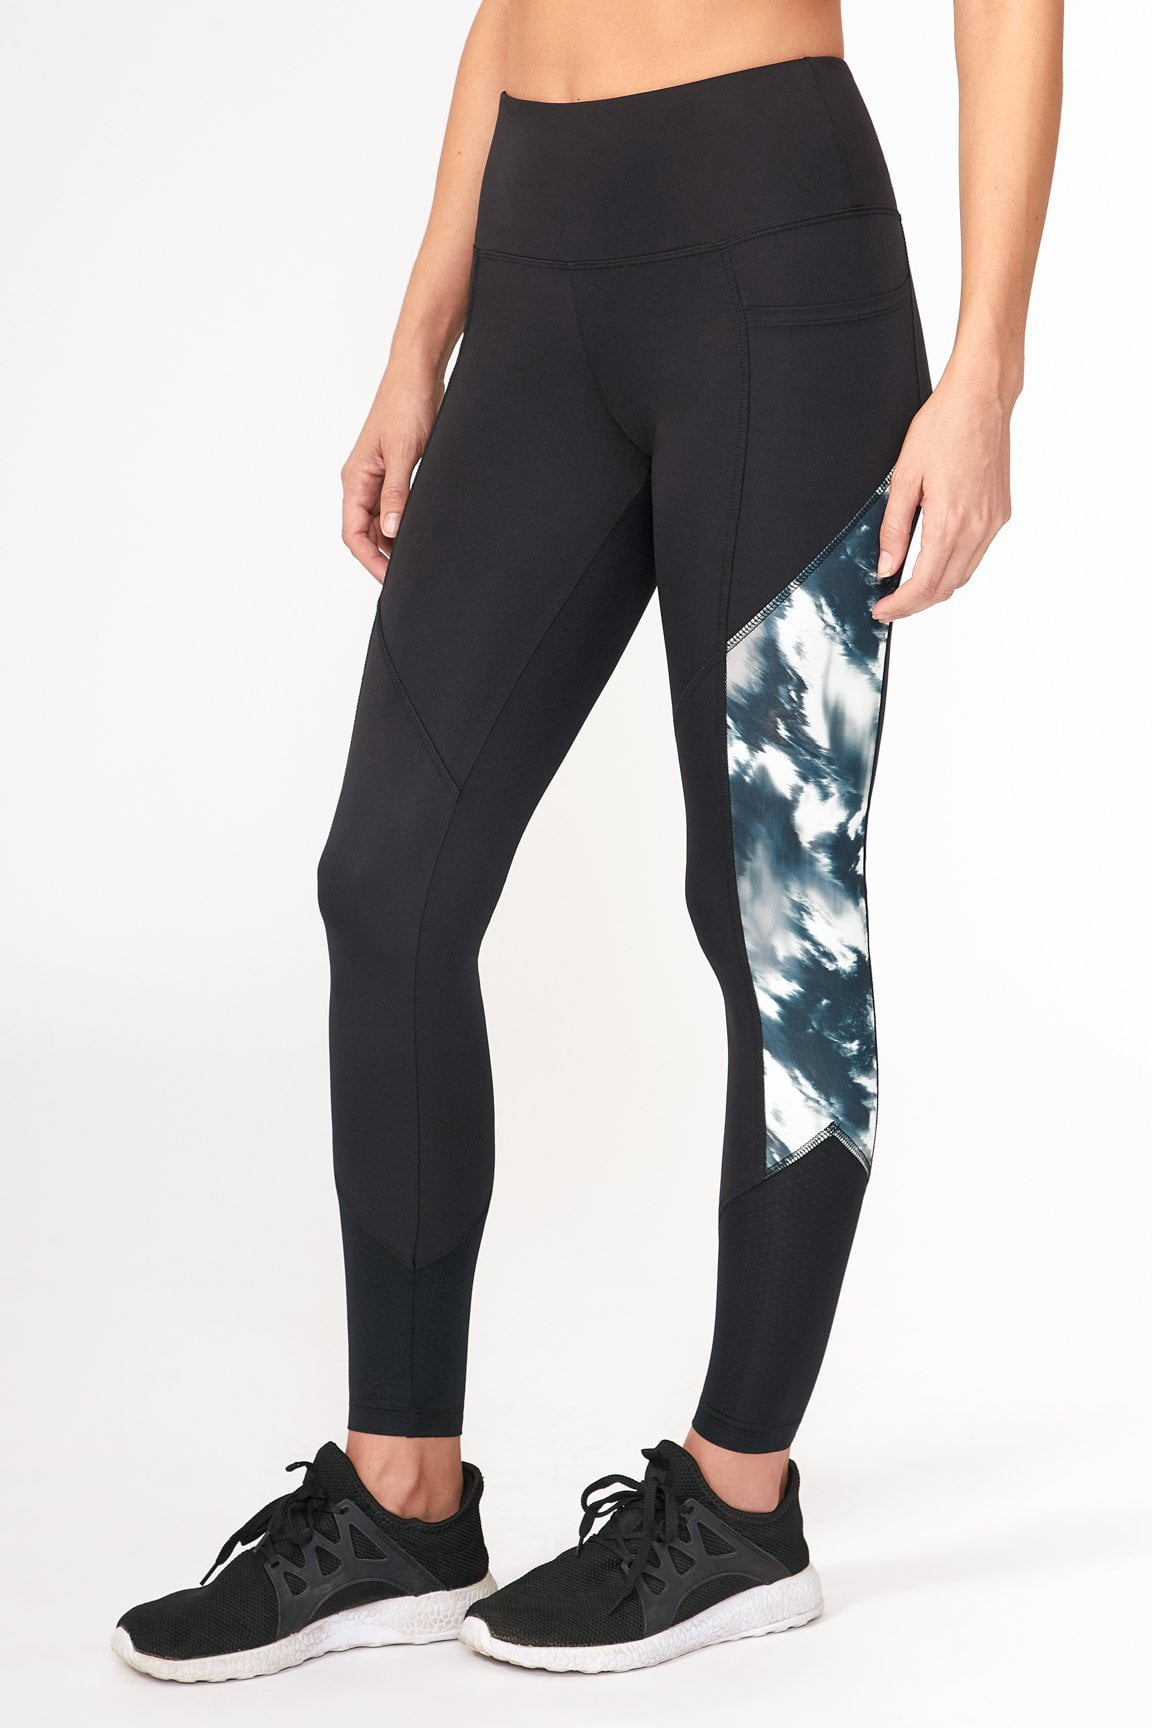 Momentum Legging ( Black Distort Color)